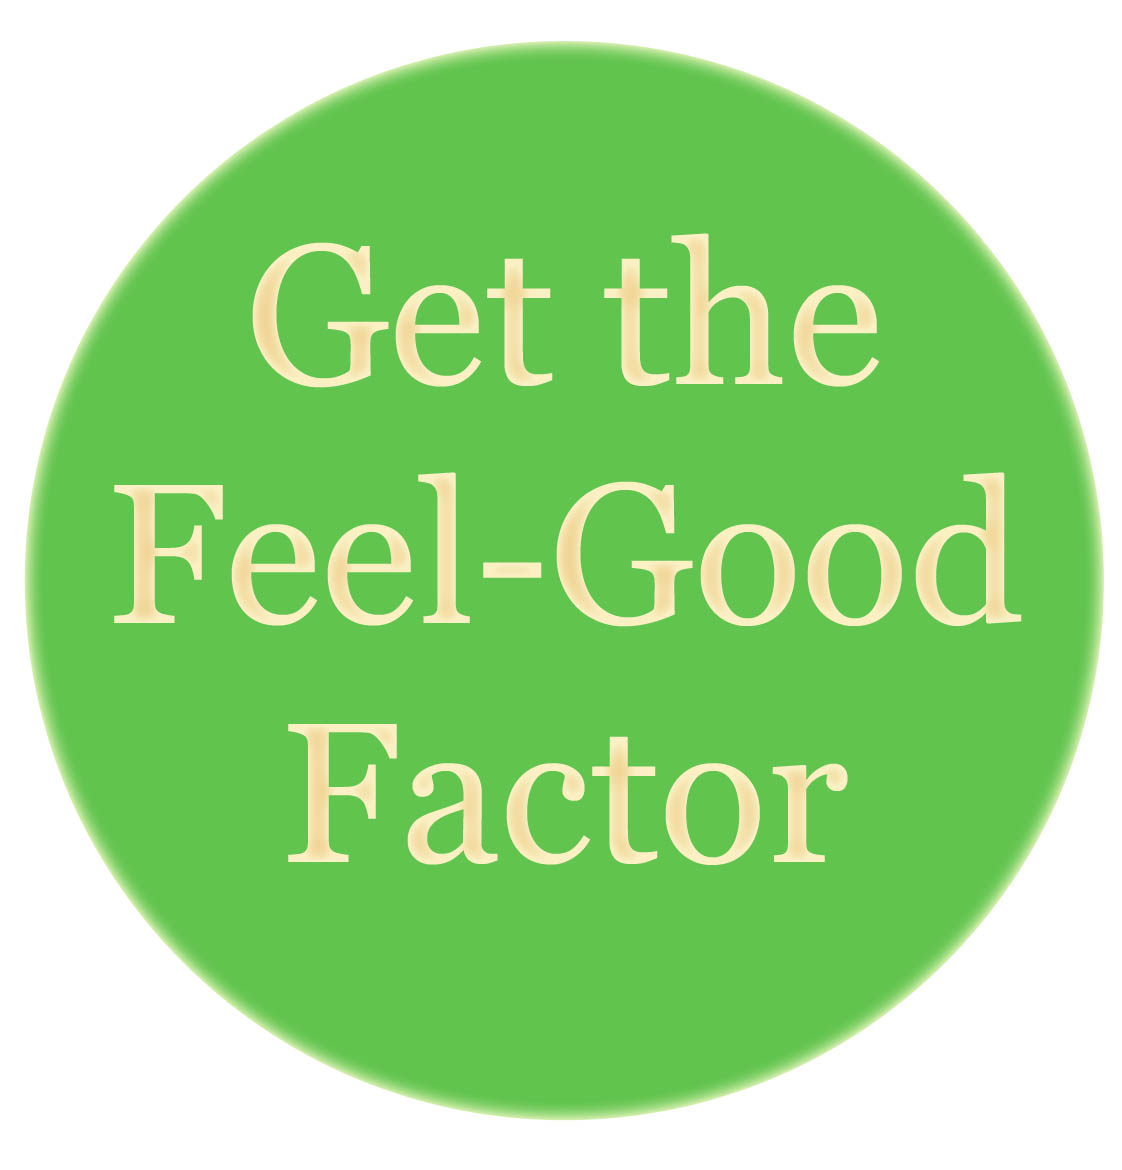 Feel good factor copy